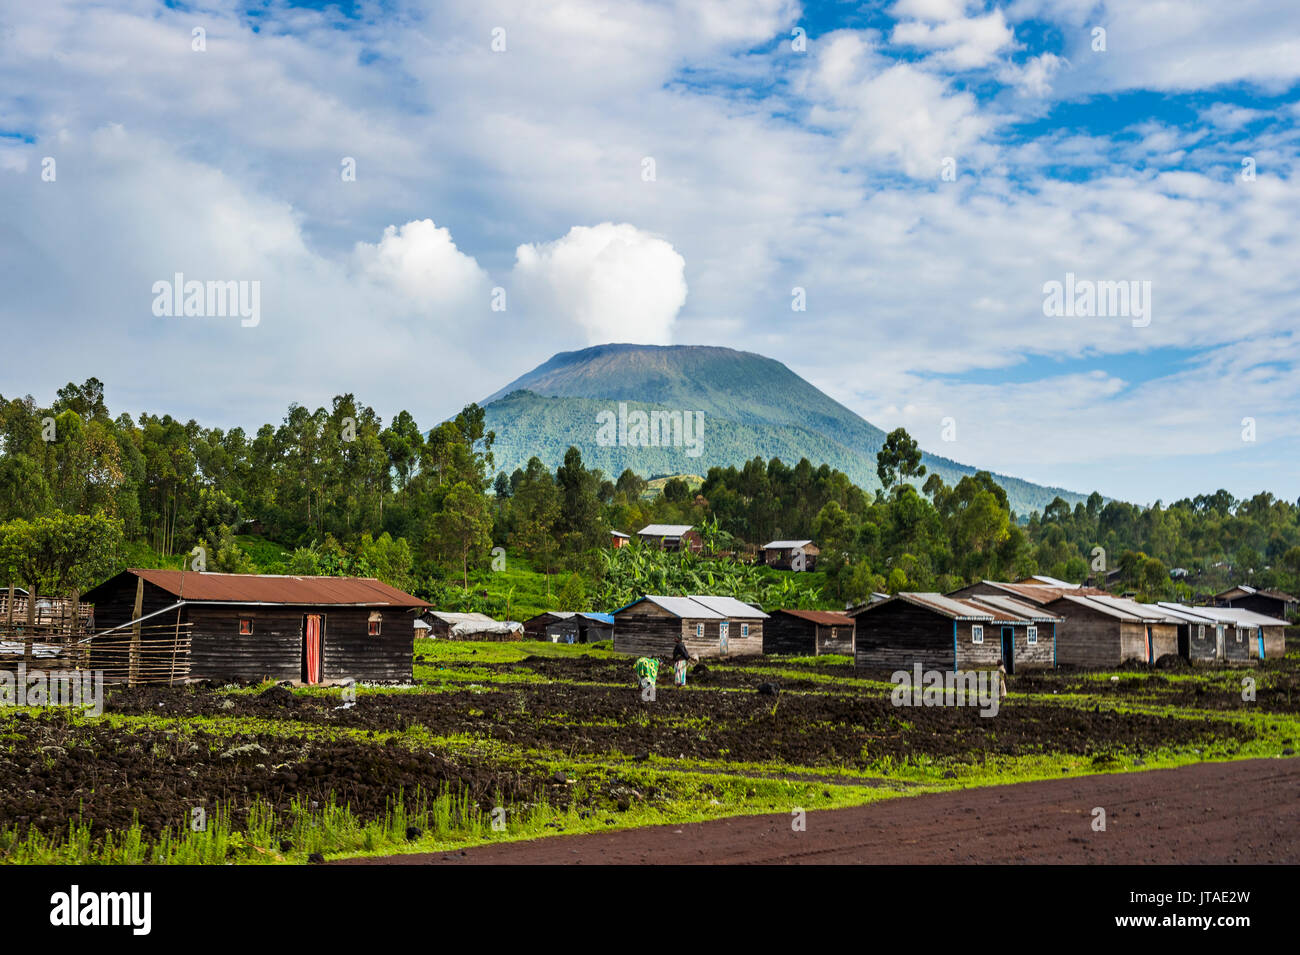 Mount Nyiragongo looming behind the town of Goma, Democratic Republic of the Congo, Africa - Stock Image